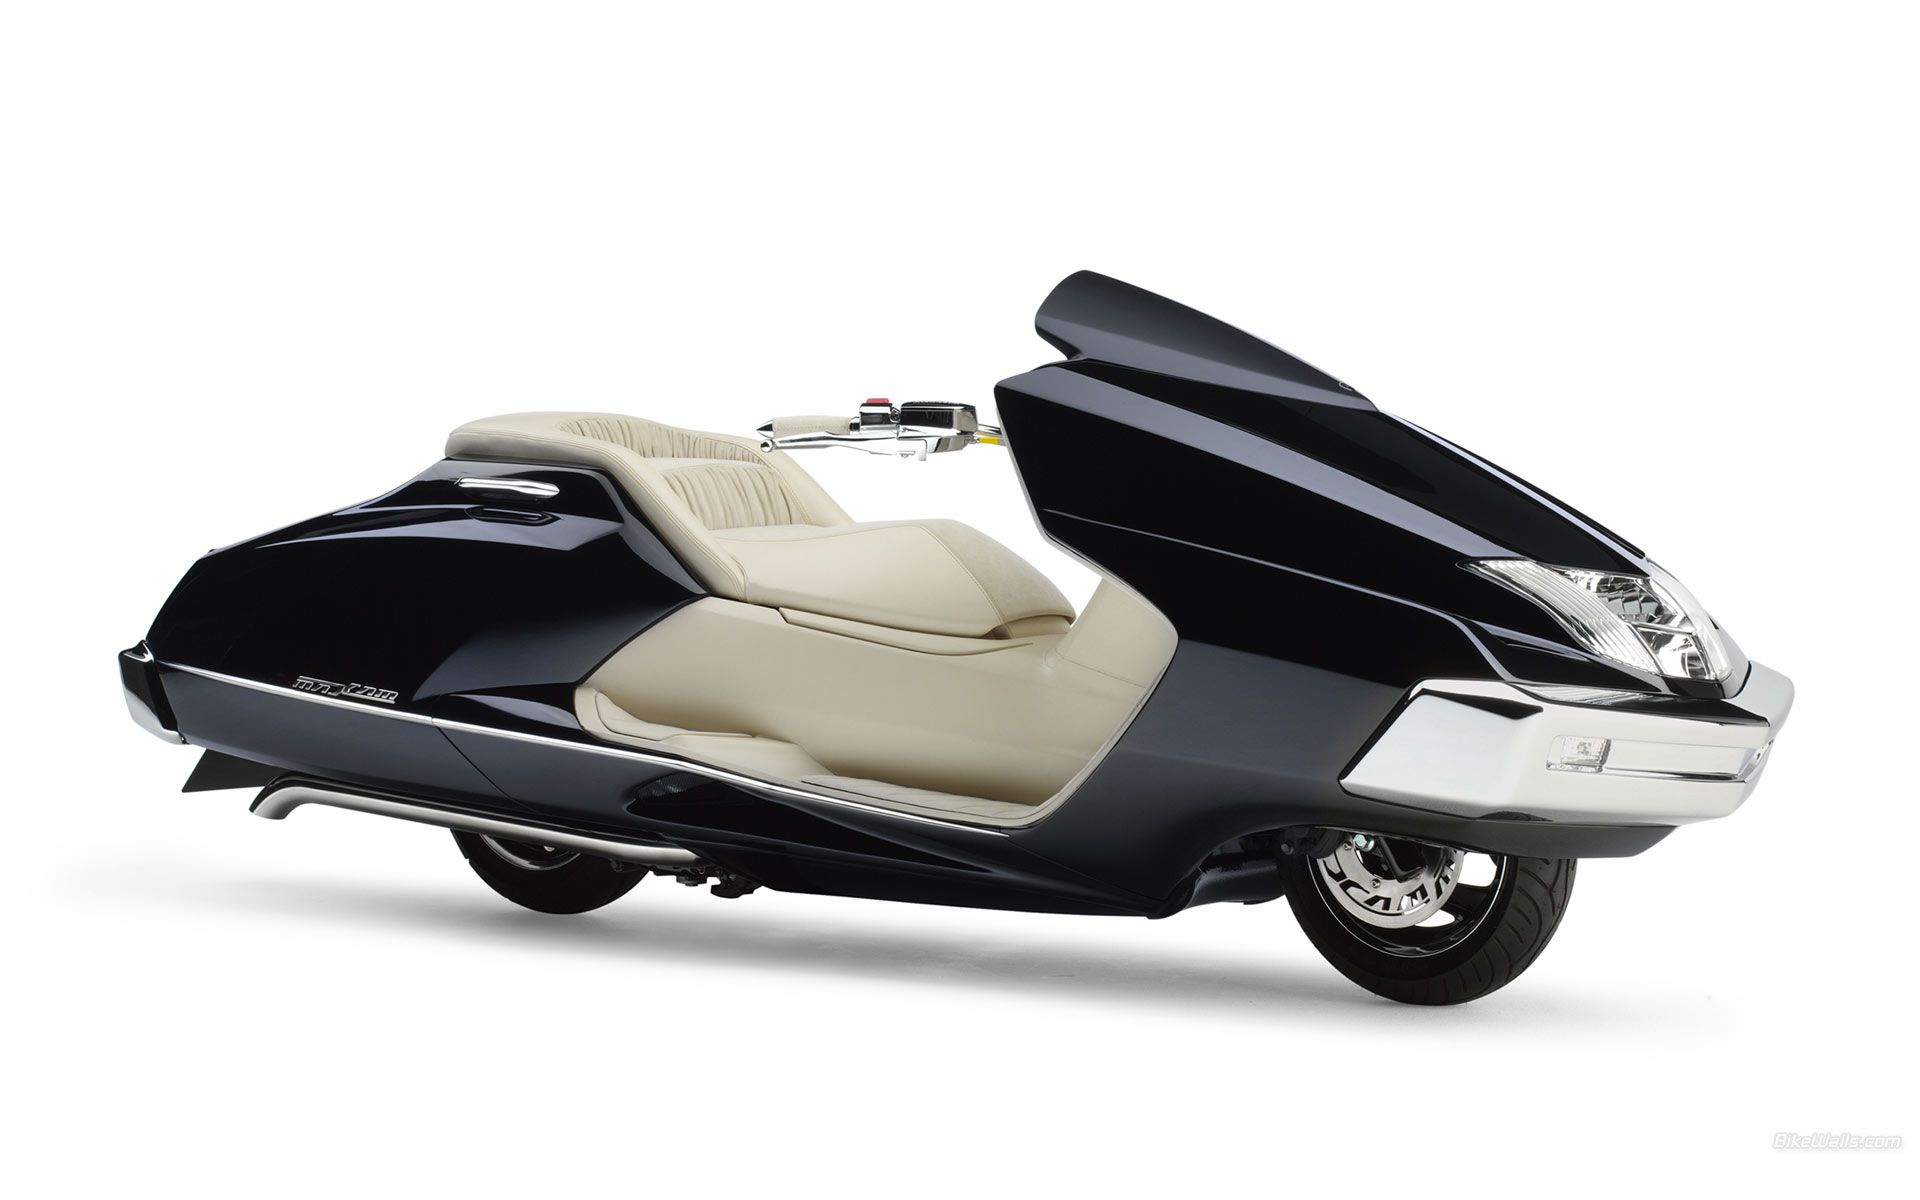 yamaha maxam 3000 scooter pinterest 4 roues and roue. Black Bedroom Furniture Sets. Home Design Ideas